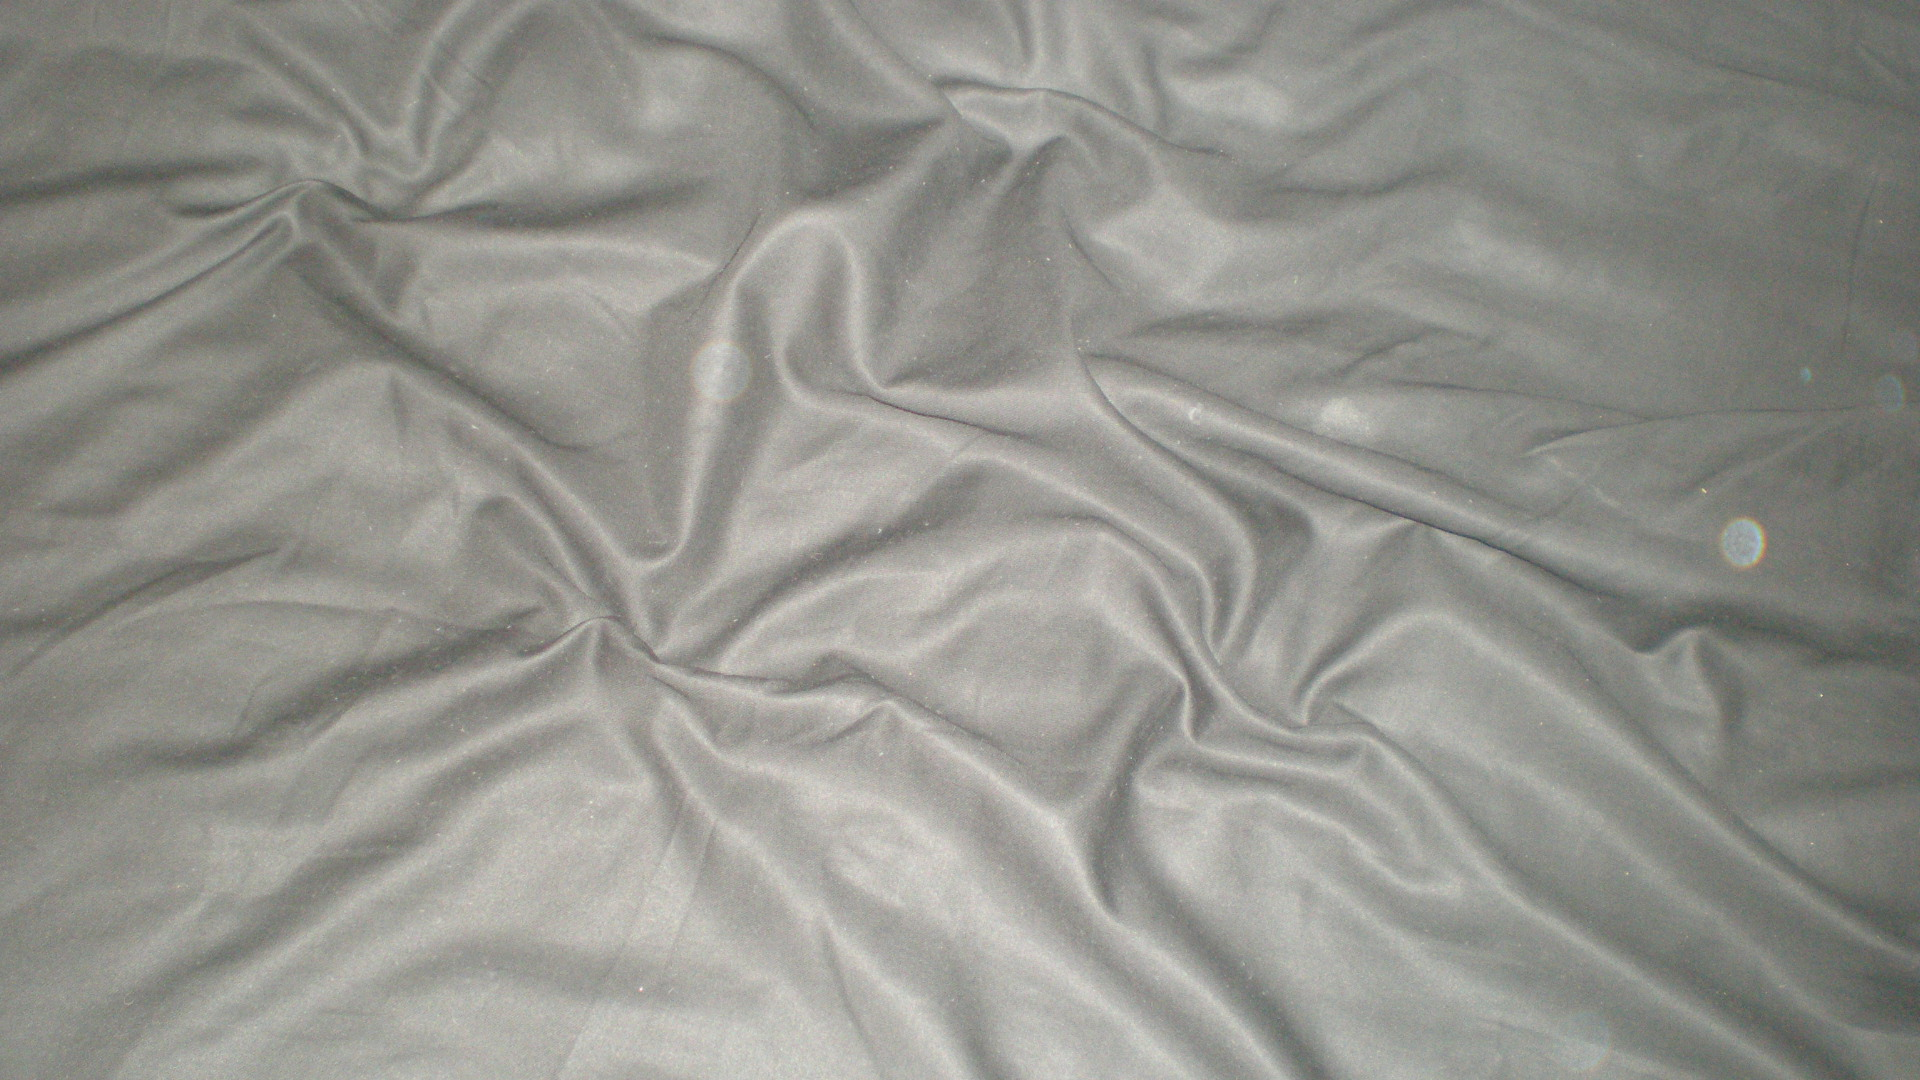 white bed sheet texture. Bed Sheet Texture By PariahRisingSTOCKS White B